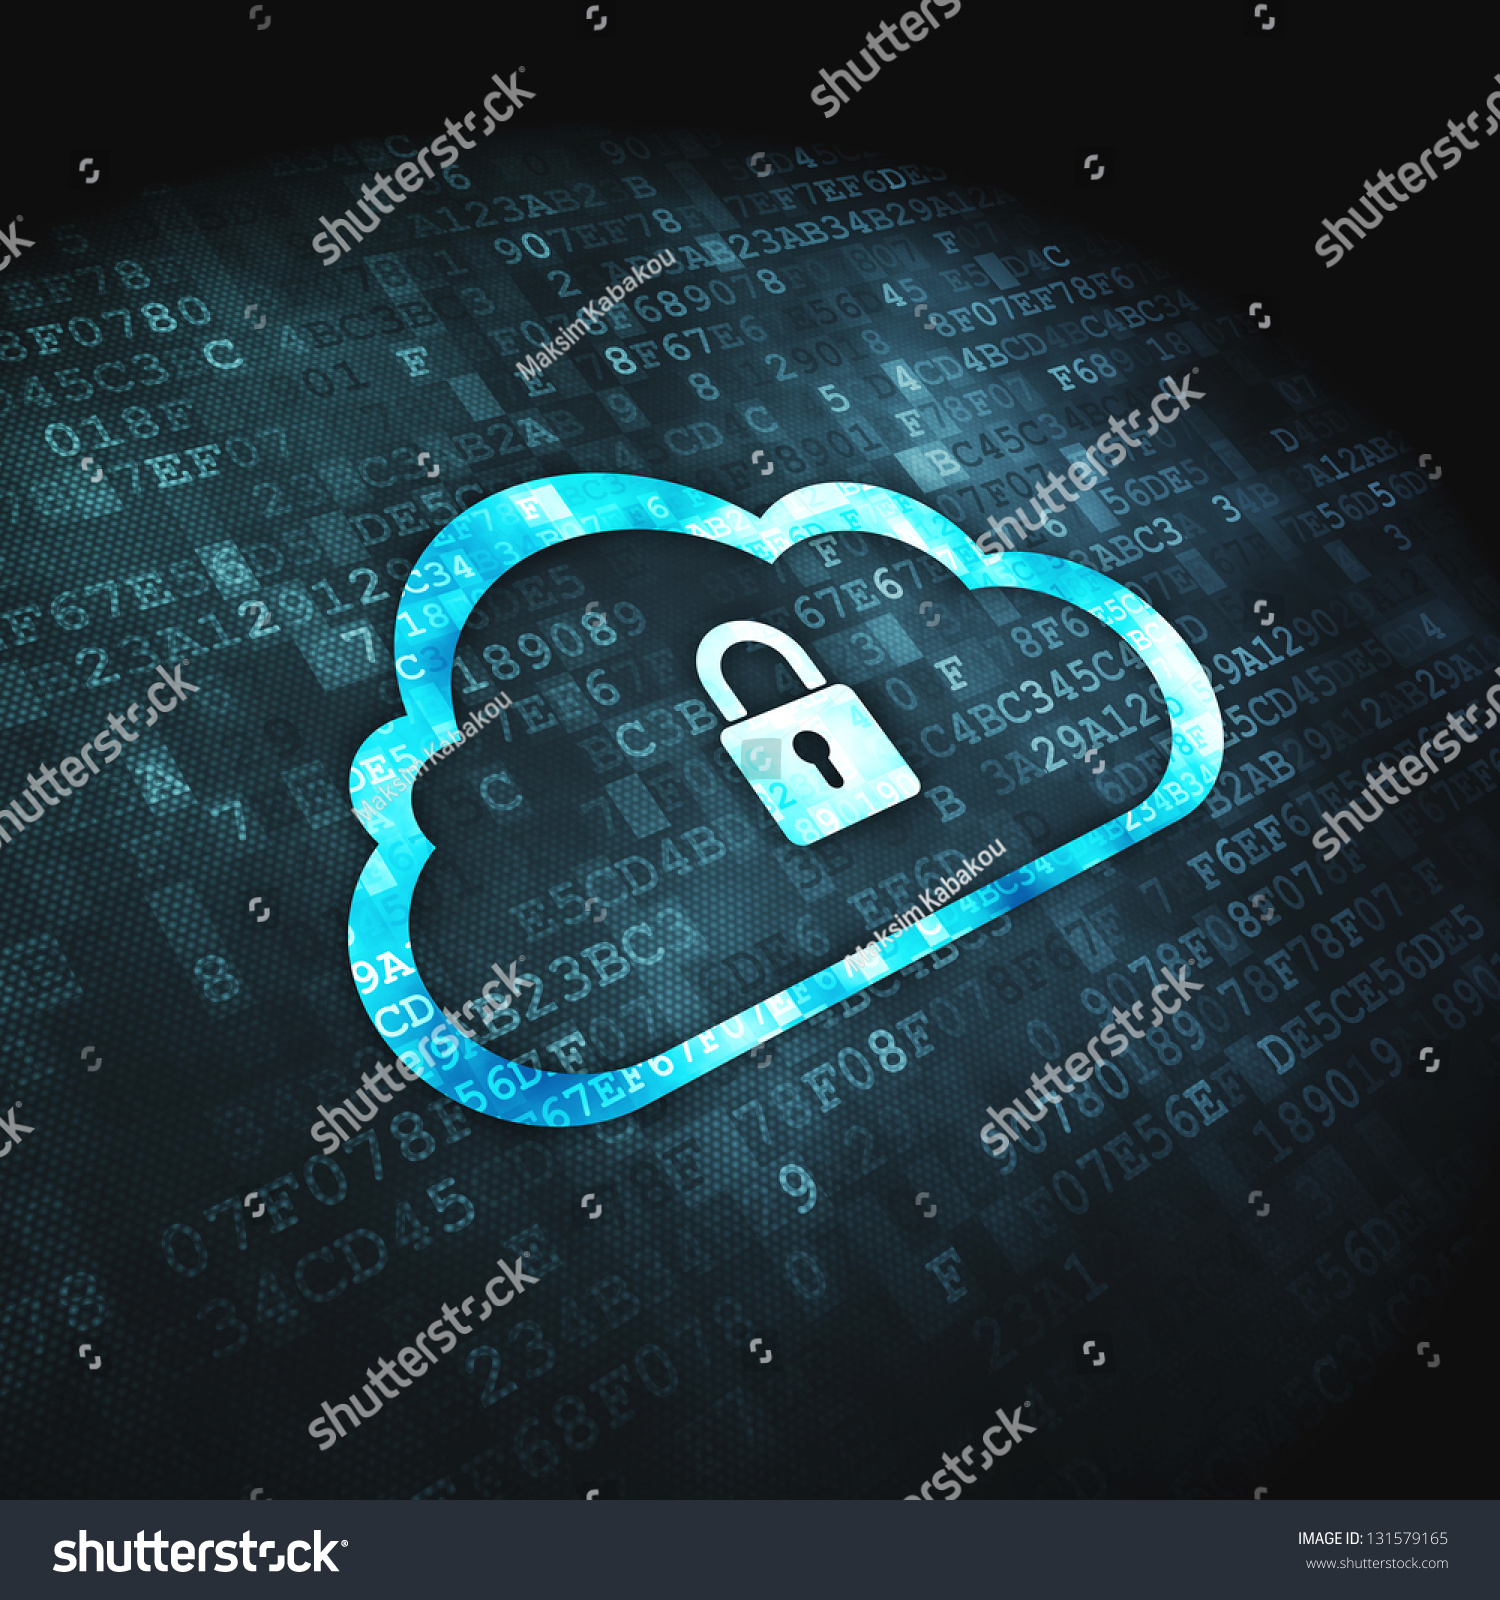 Networking Cloud Computing: Cloud Computing Or Network Security Concept: Pixelated